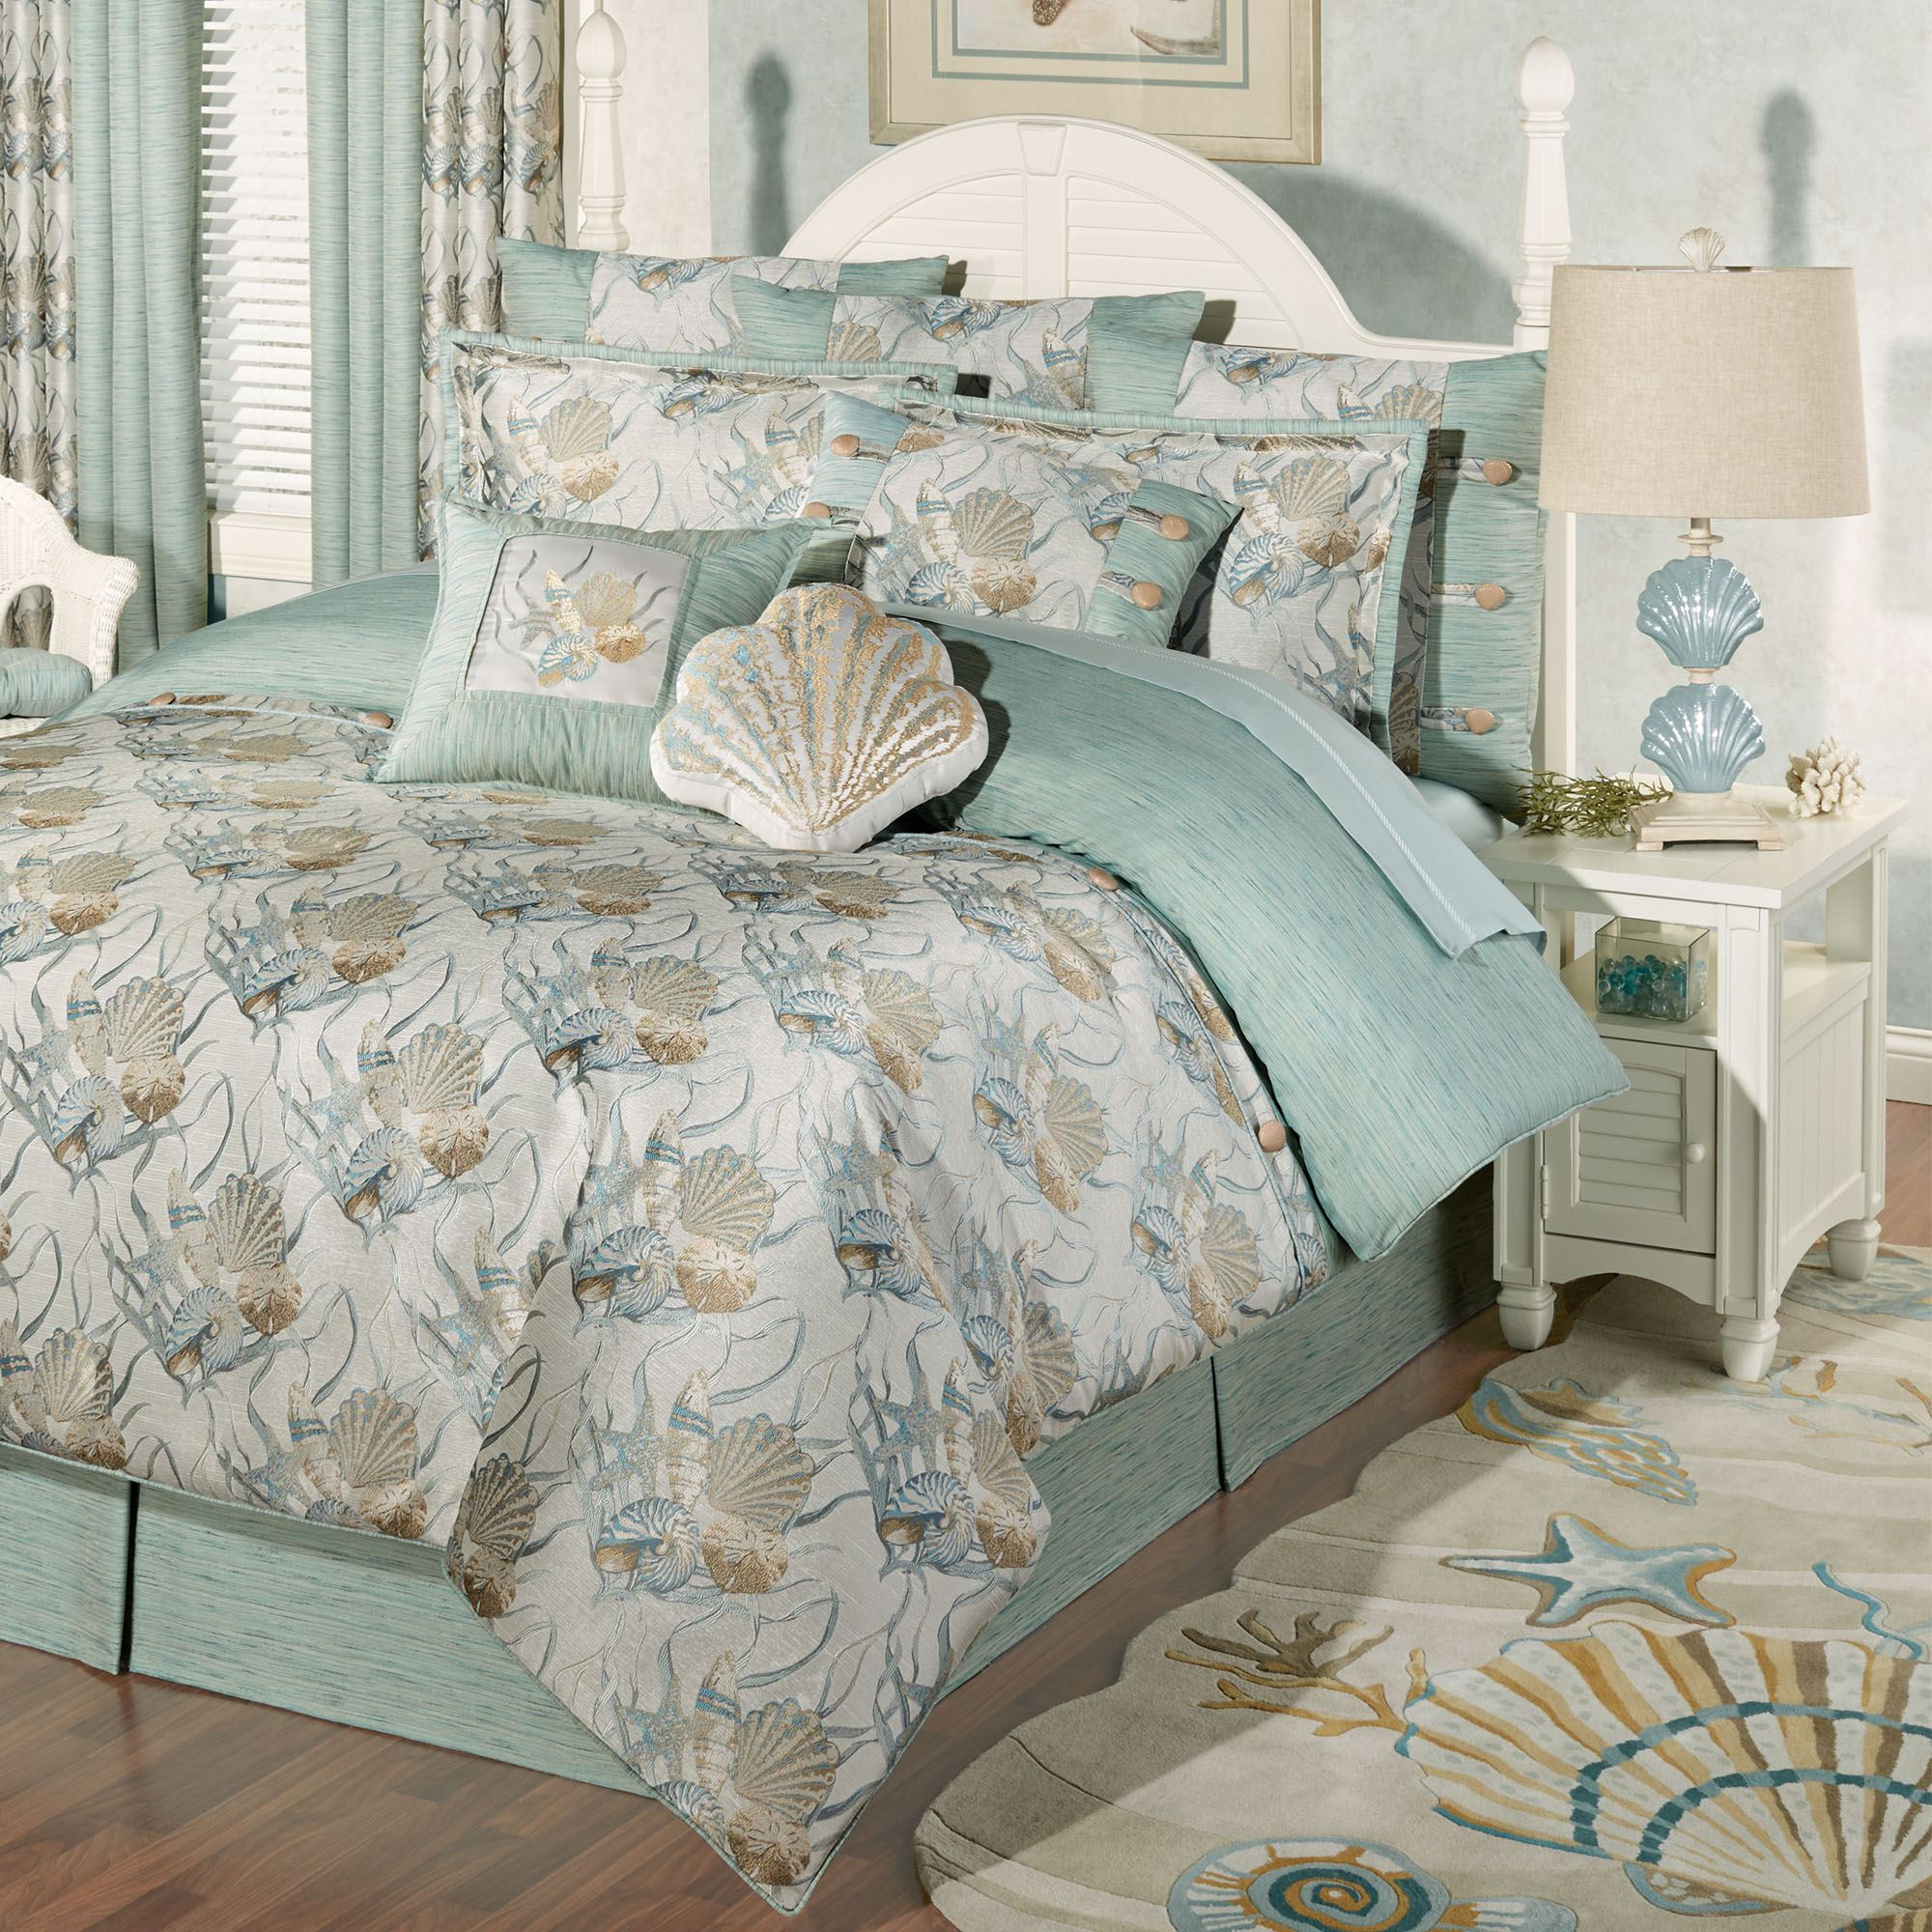 Bedding Decor: Coastal Dream Seashell Comforter Bedding